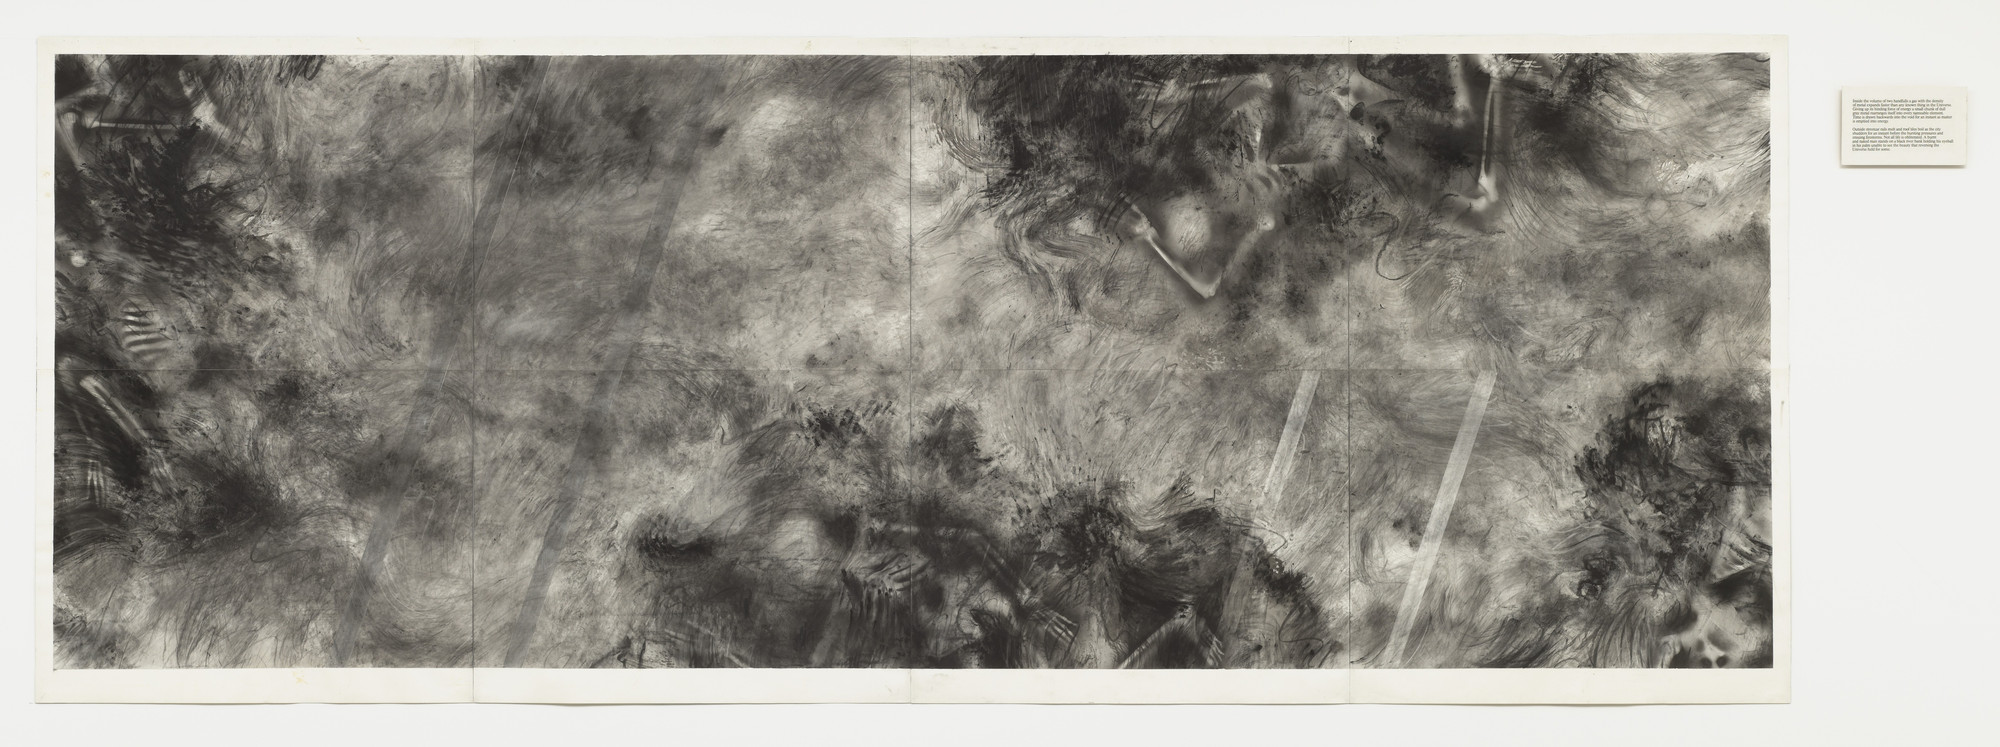 Robert Morris. Untitled from the Firestorm series. 1982